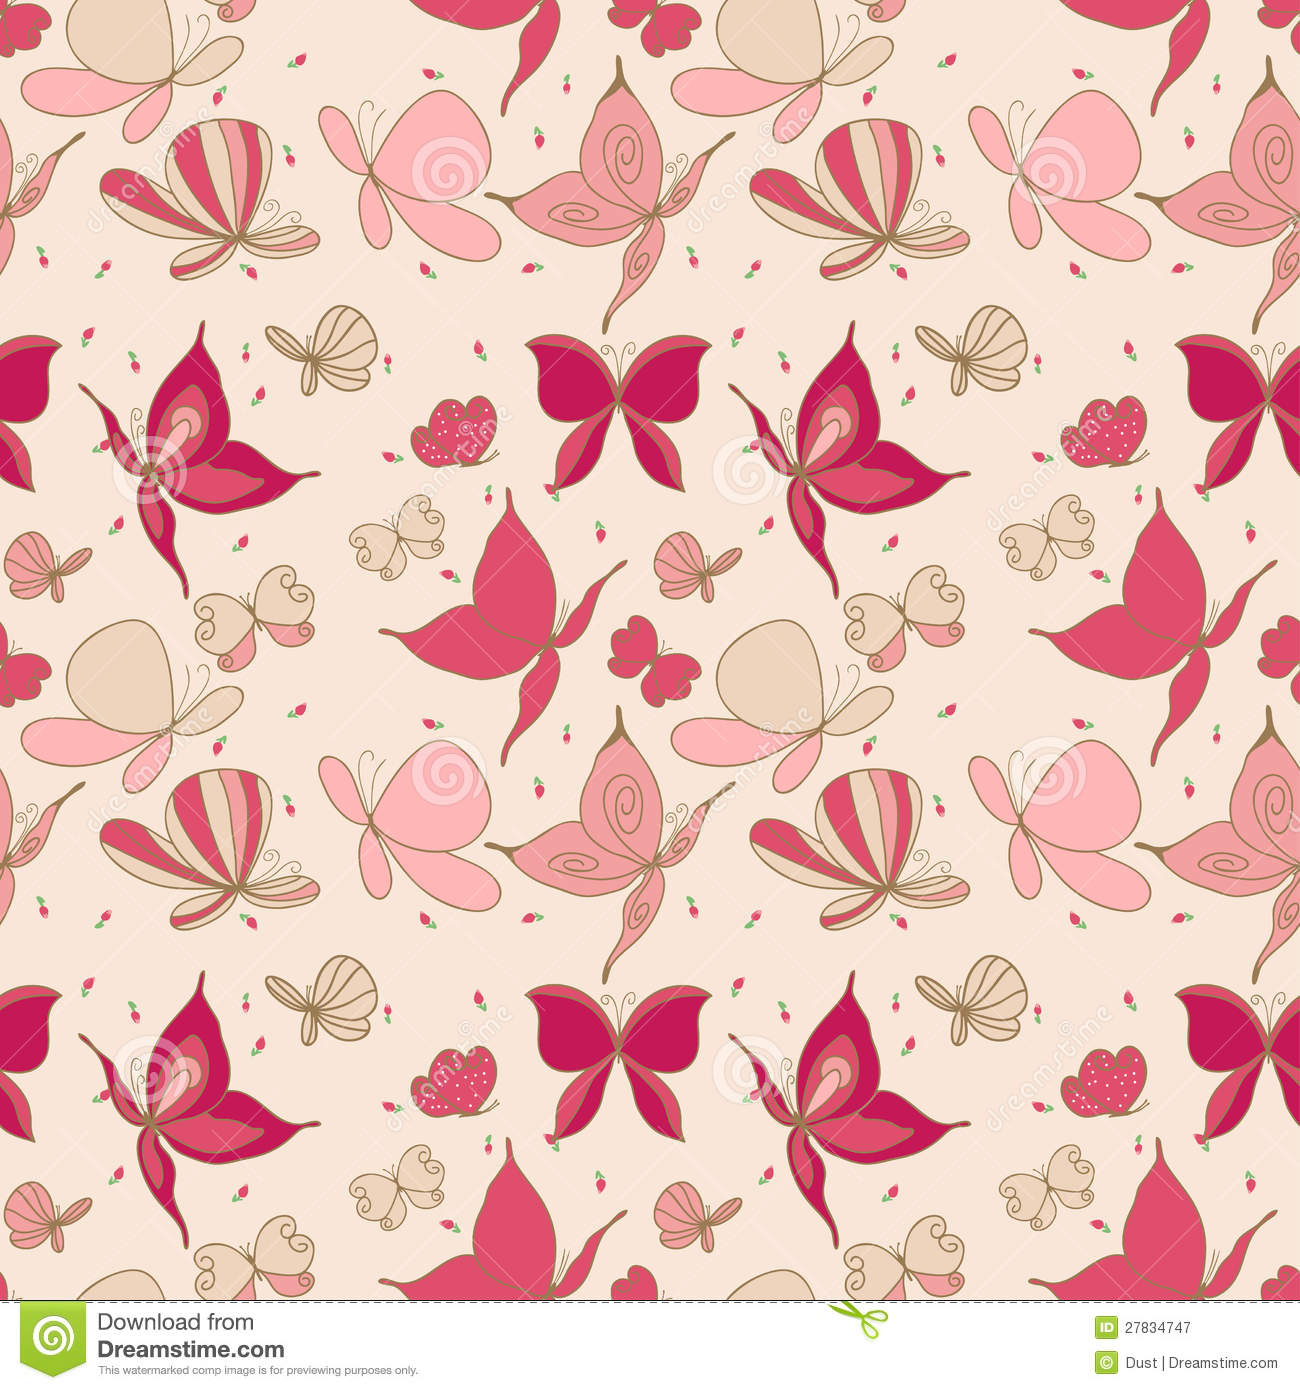 Butterfly Pattern Awesome Decorating Ideas